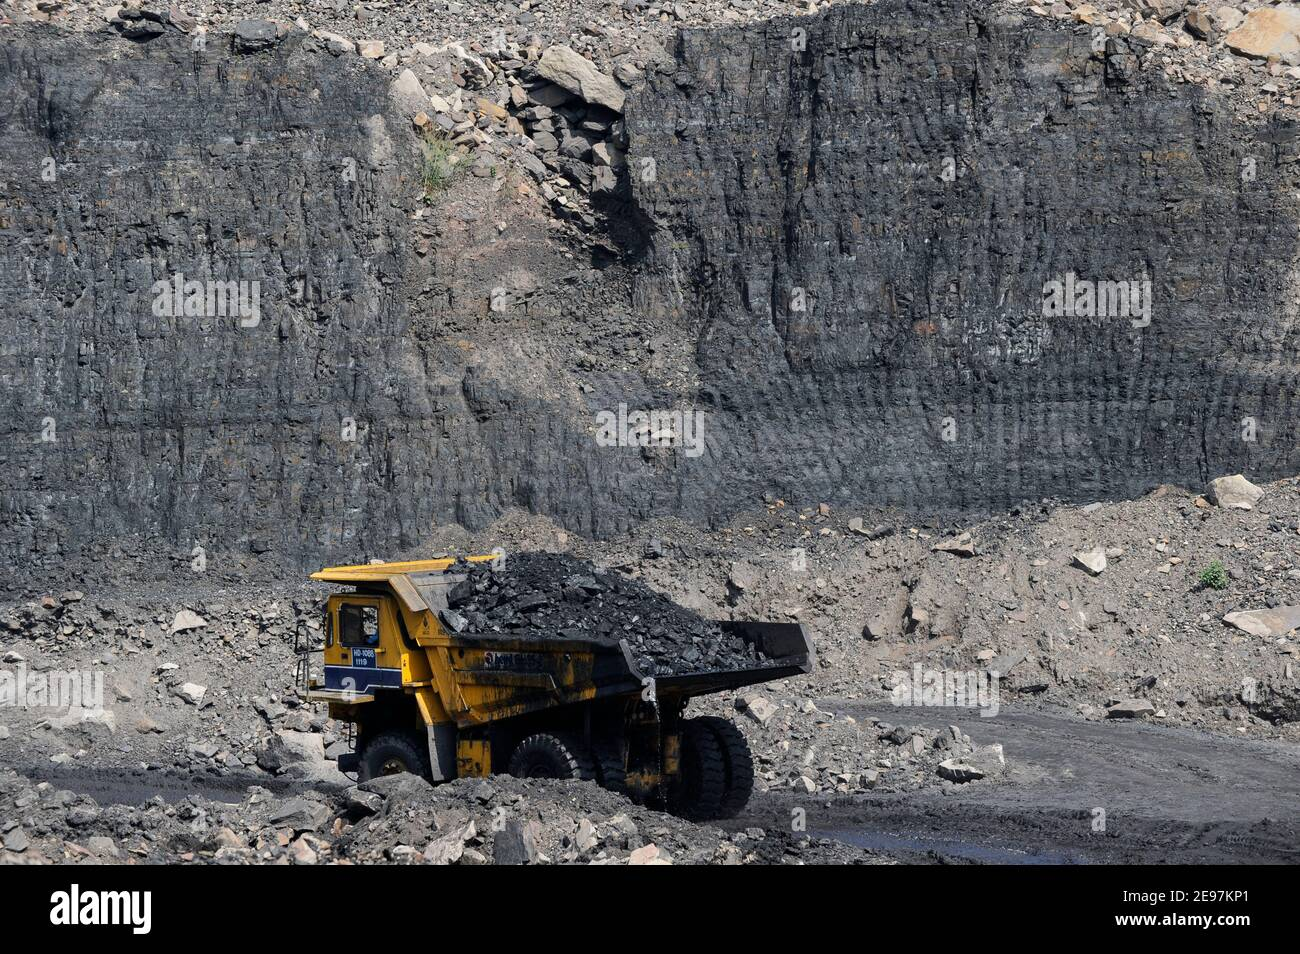 INDIA Dhanbad, open-cast coal mining of BCCL Ltd a company of COAL INDIA, large BEML dumper for coal transport from the mine / INDIEN Dhanbad , offener Kohle Tagebau von BCCL Ltd. ein Tochterunternehmen von Coal India Stock Photo